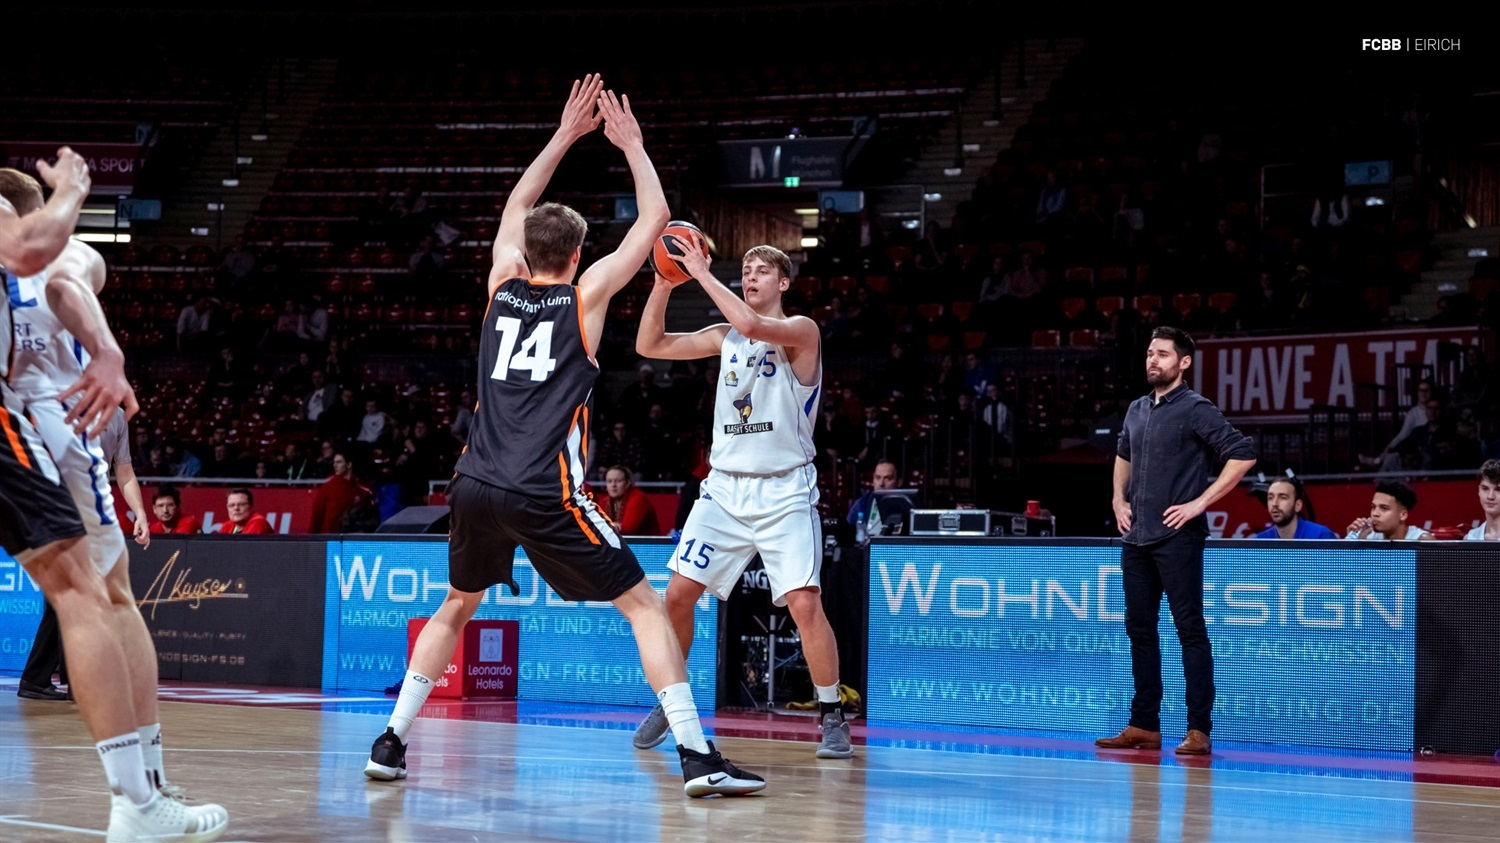 Michael Javernik - U18 Fraport Skyliners Frankfurt - ANGT Munich 2019 (photo  FCBB - Eirich) JT18